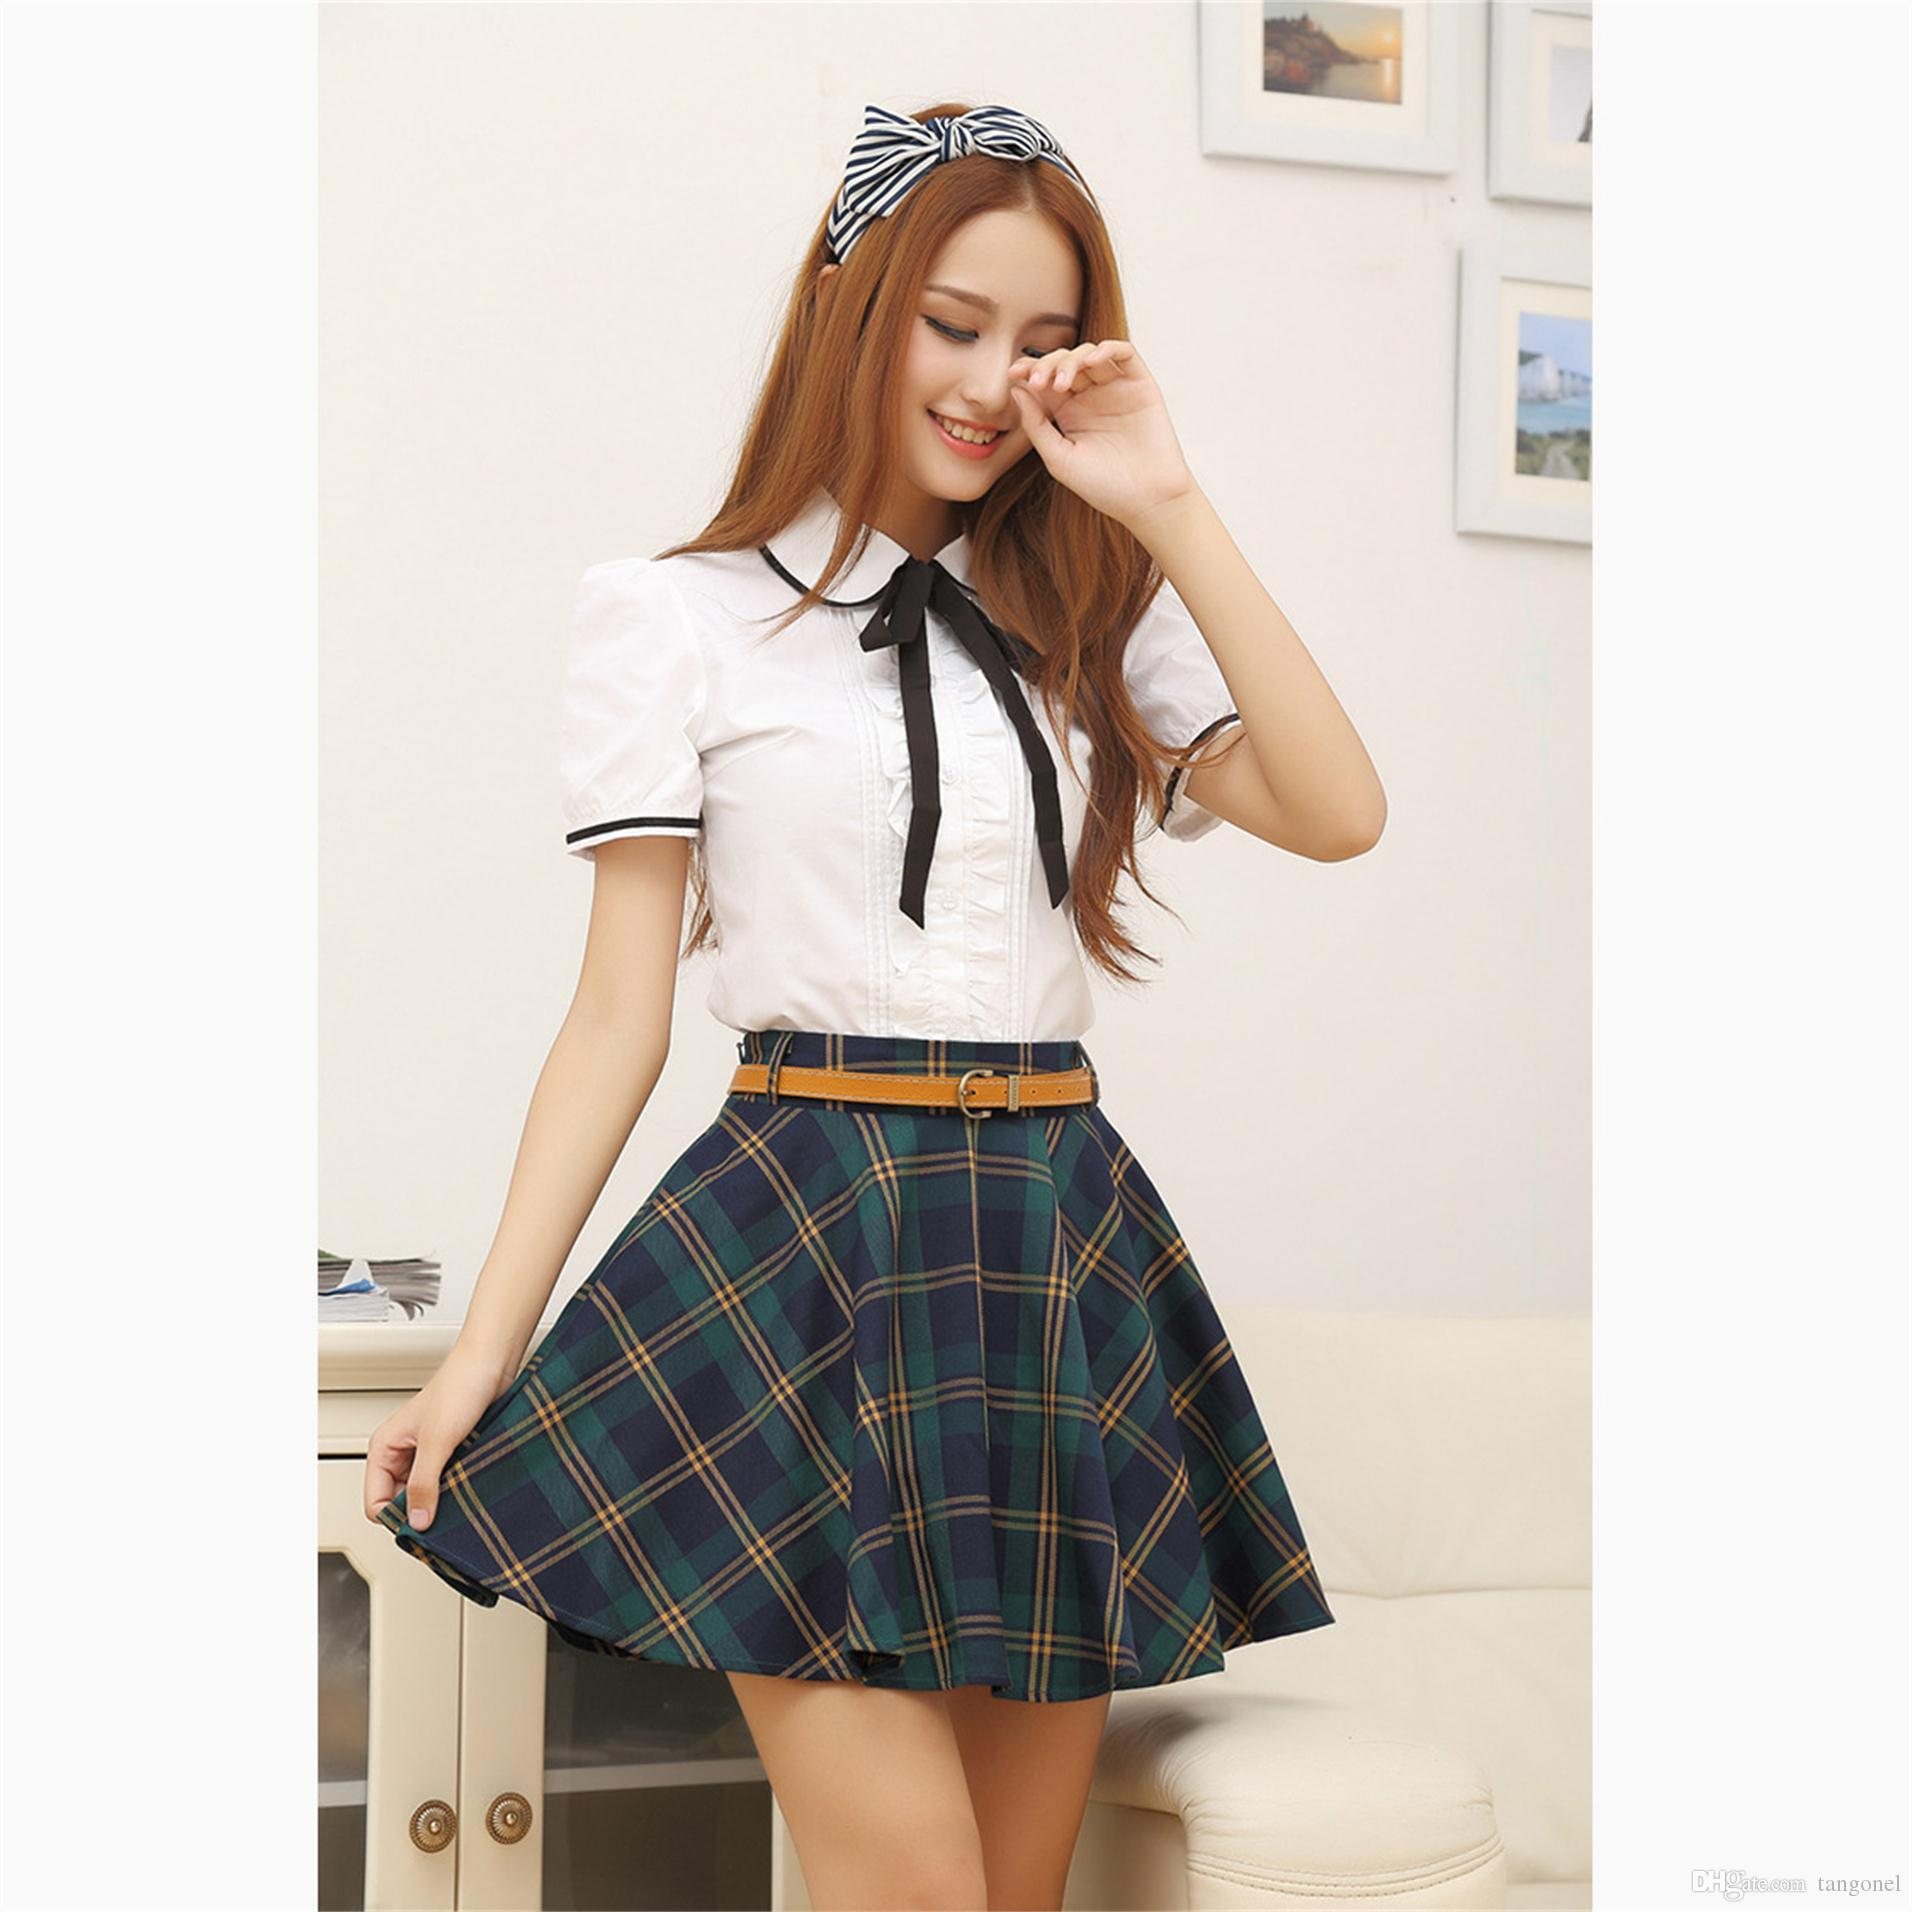 College Girl In Skirt